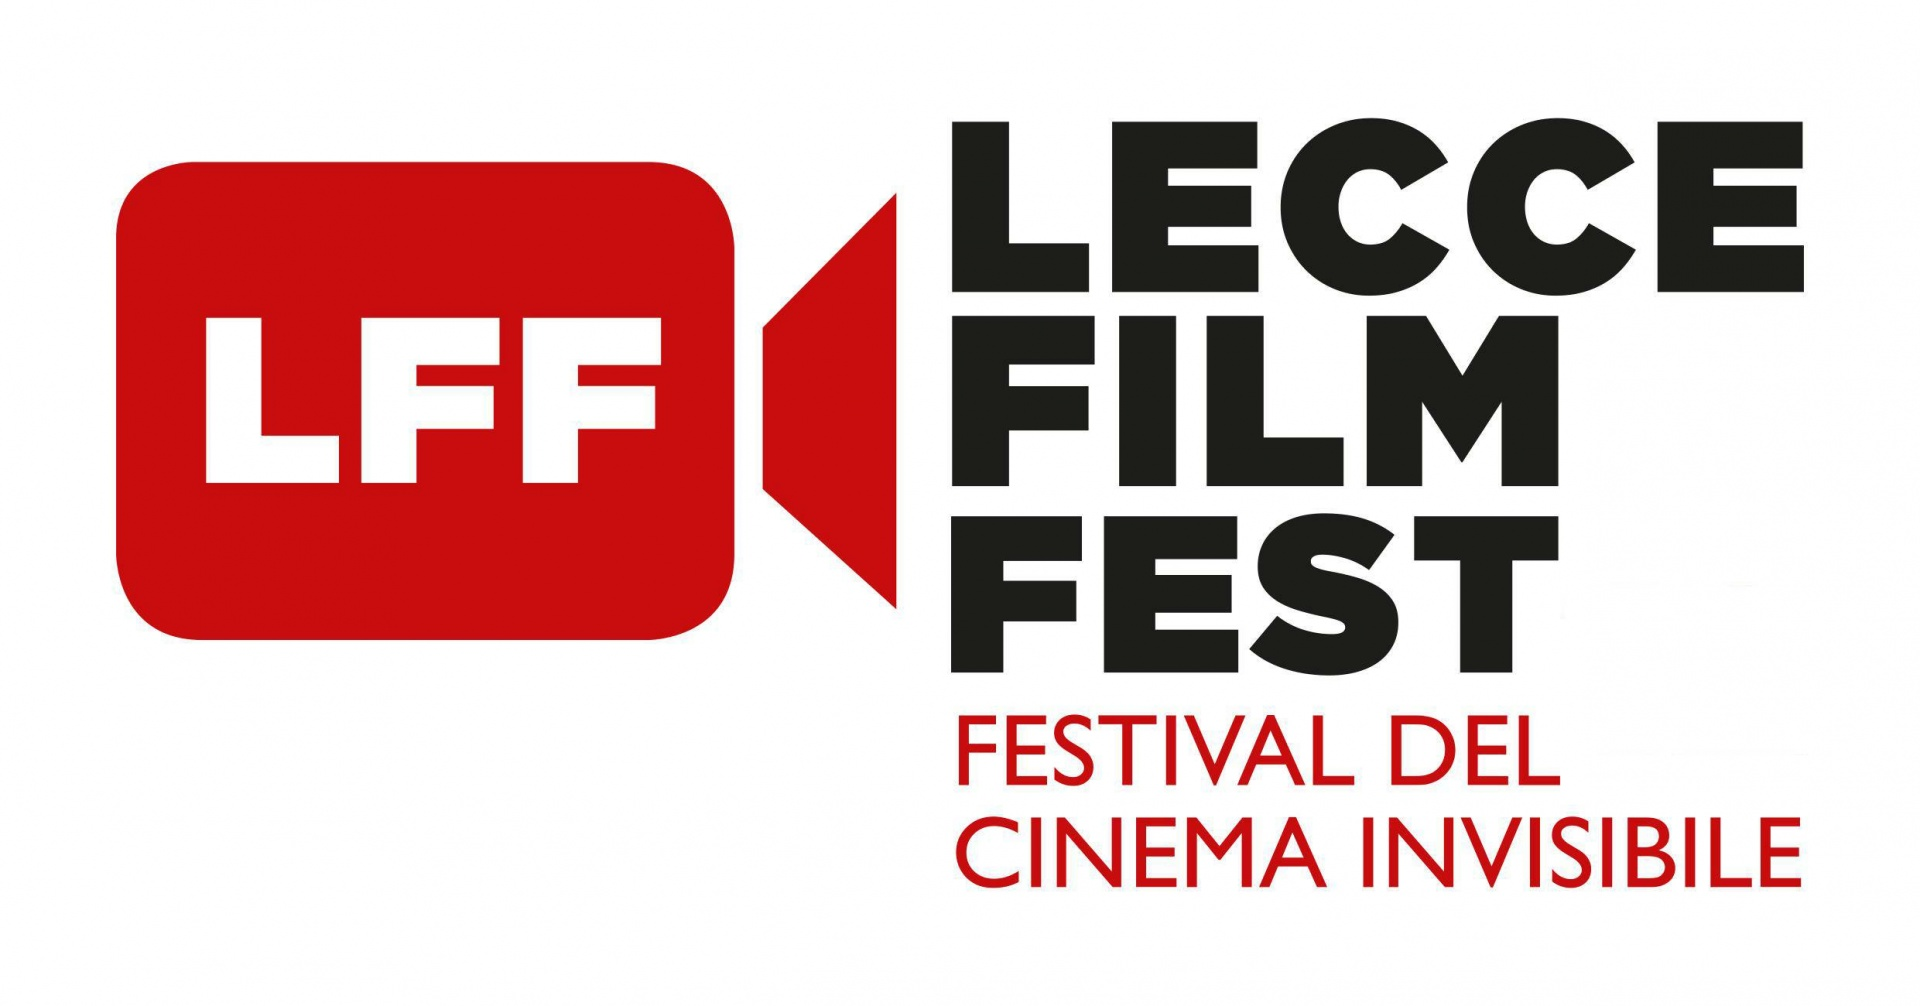 leccefilmfest